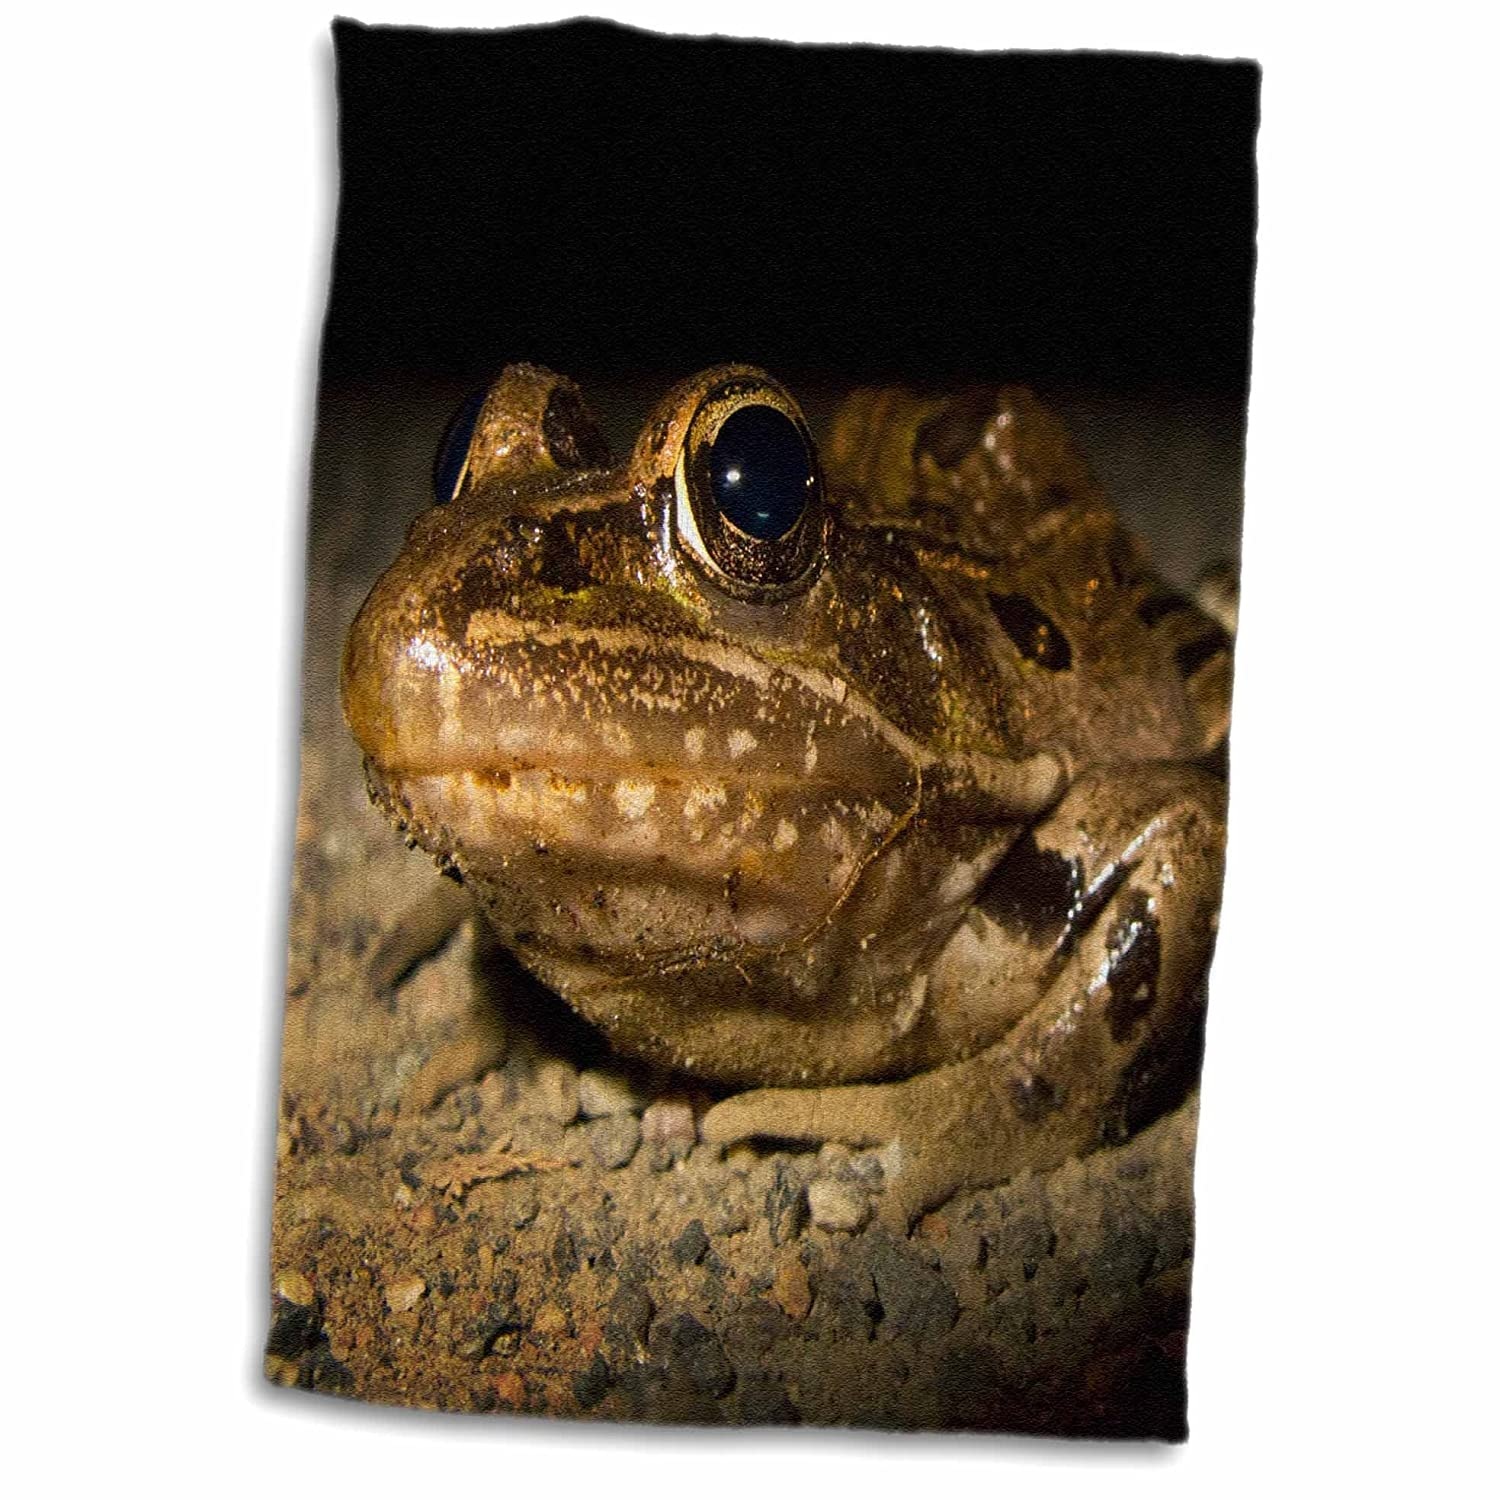 3D Rose New Jersey-Swamp NWR. Southern Leopard Frog-Us31 Jgl0034-Jim Gilbert Hand/Sports Towel 15 x 22